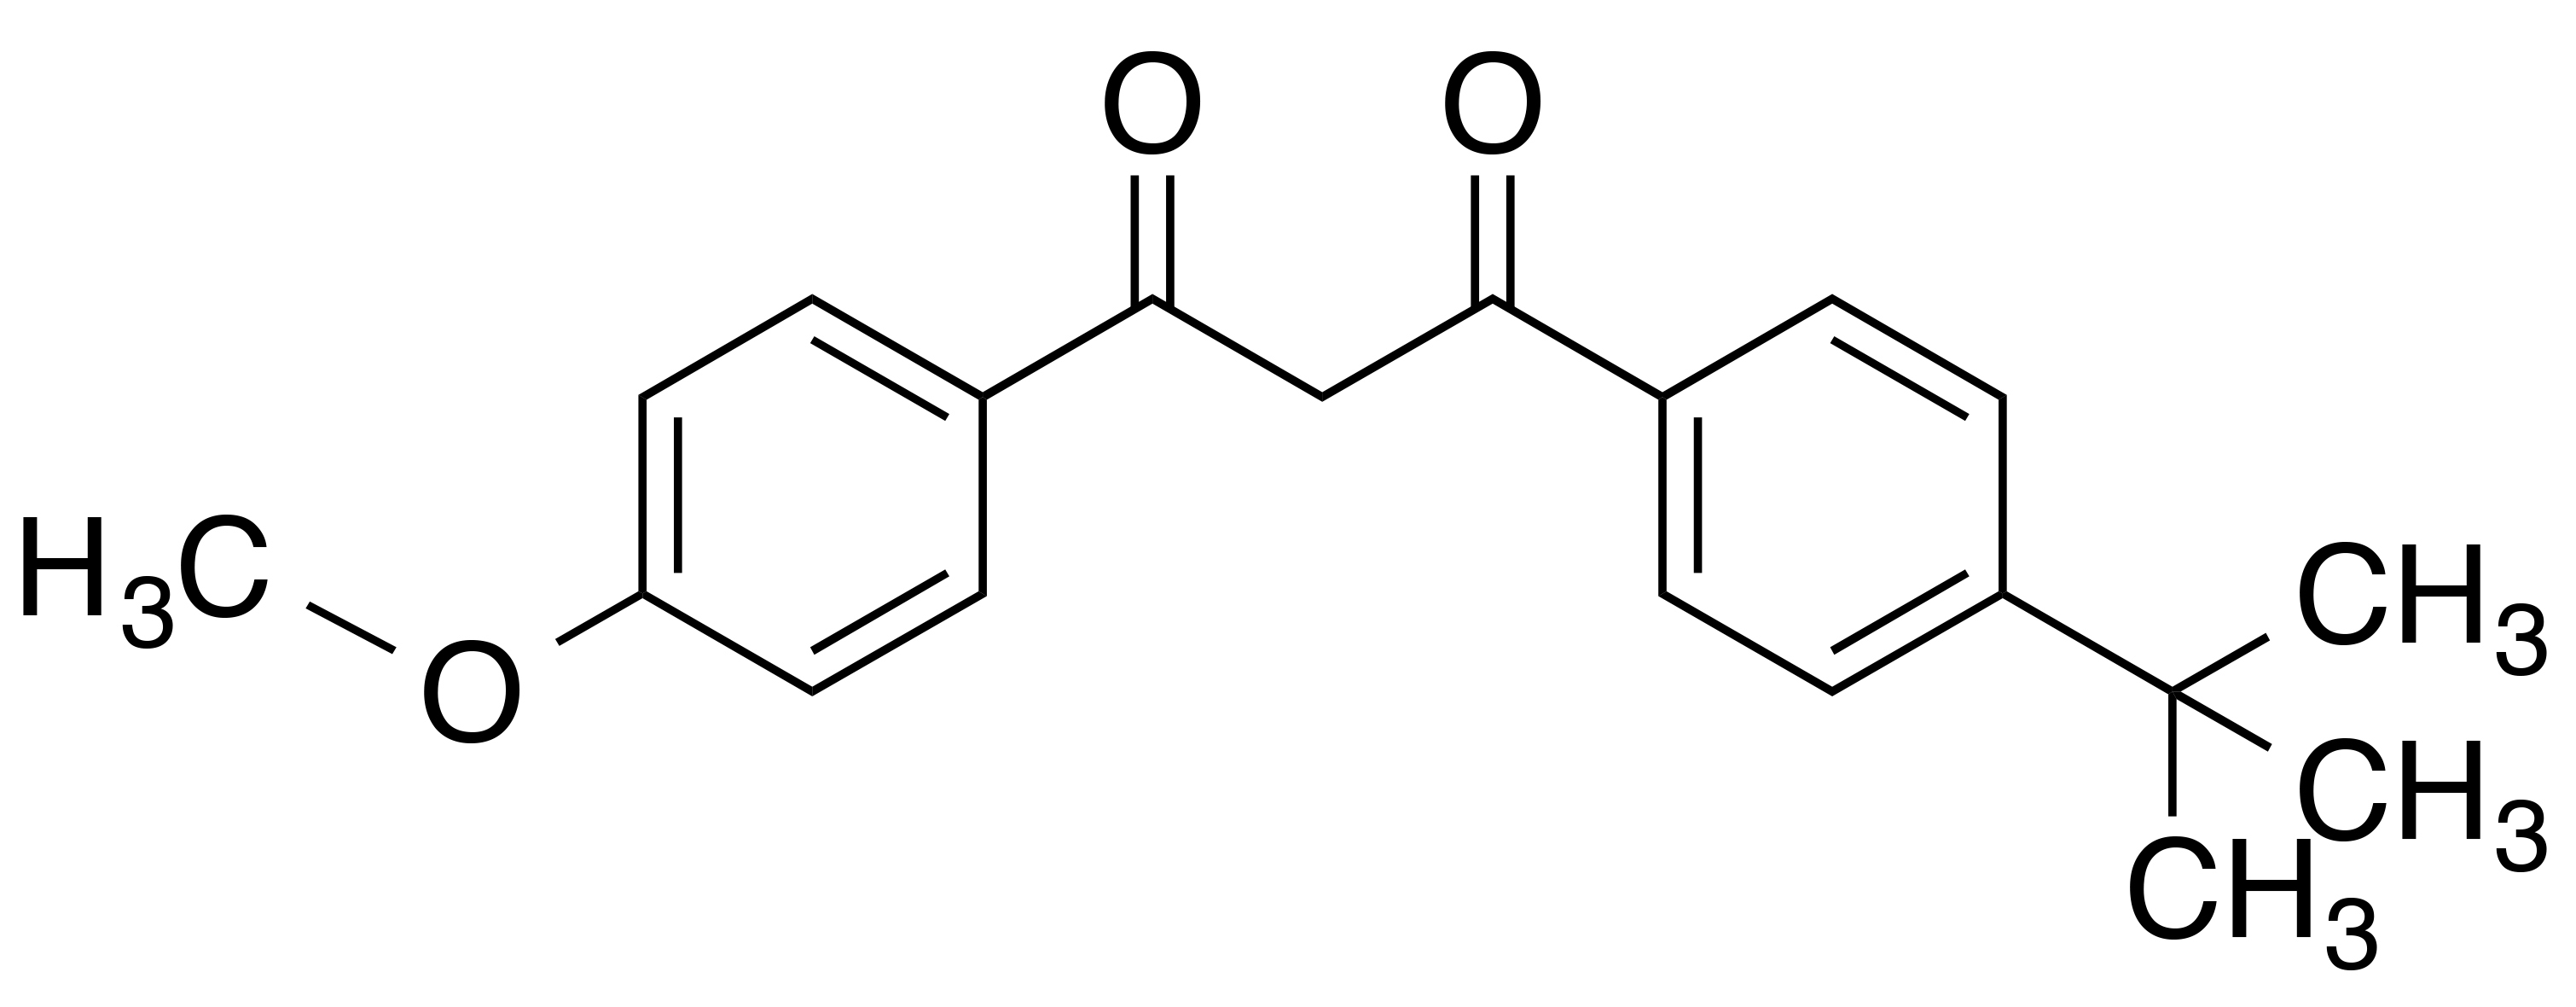 Church Of The Good Shepherd Clipart together with Activity Sheet 1 How The Eyes Work as well Rifton Wave likewise Wash Those Hands Because You Want To Not Because Youre Told To additionally Un Hazard Warning Diamond Label Self Adhesive Placard Aerosol Hz Hz1012. on skin care resources